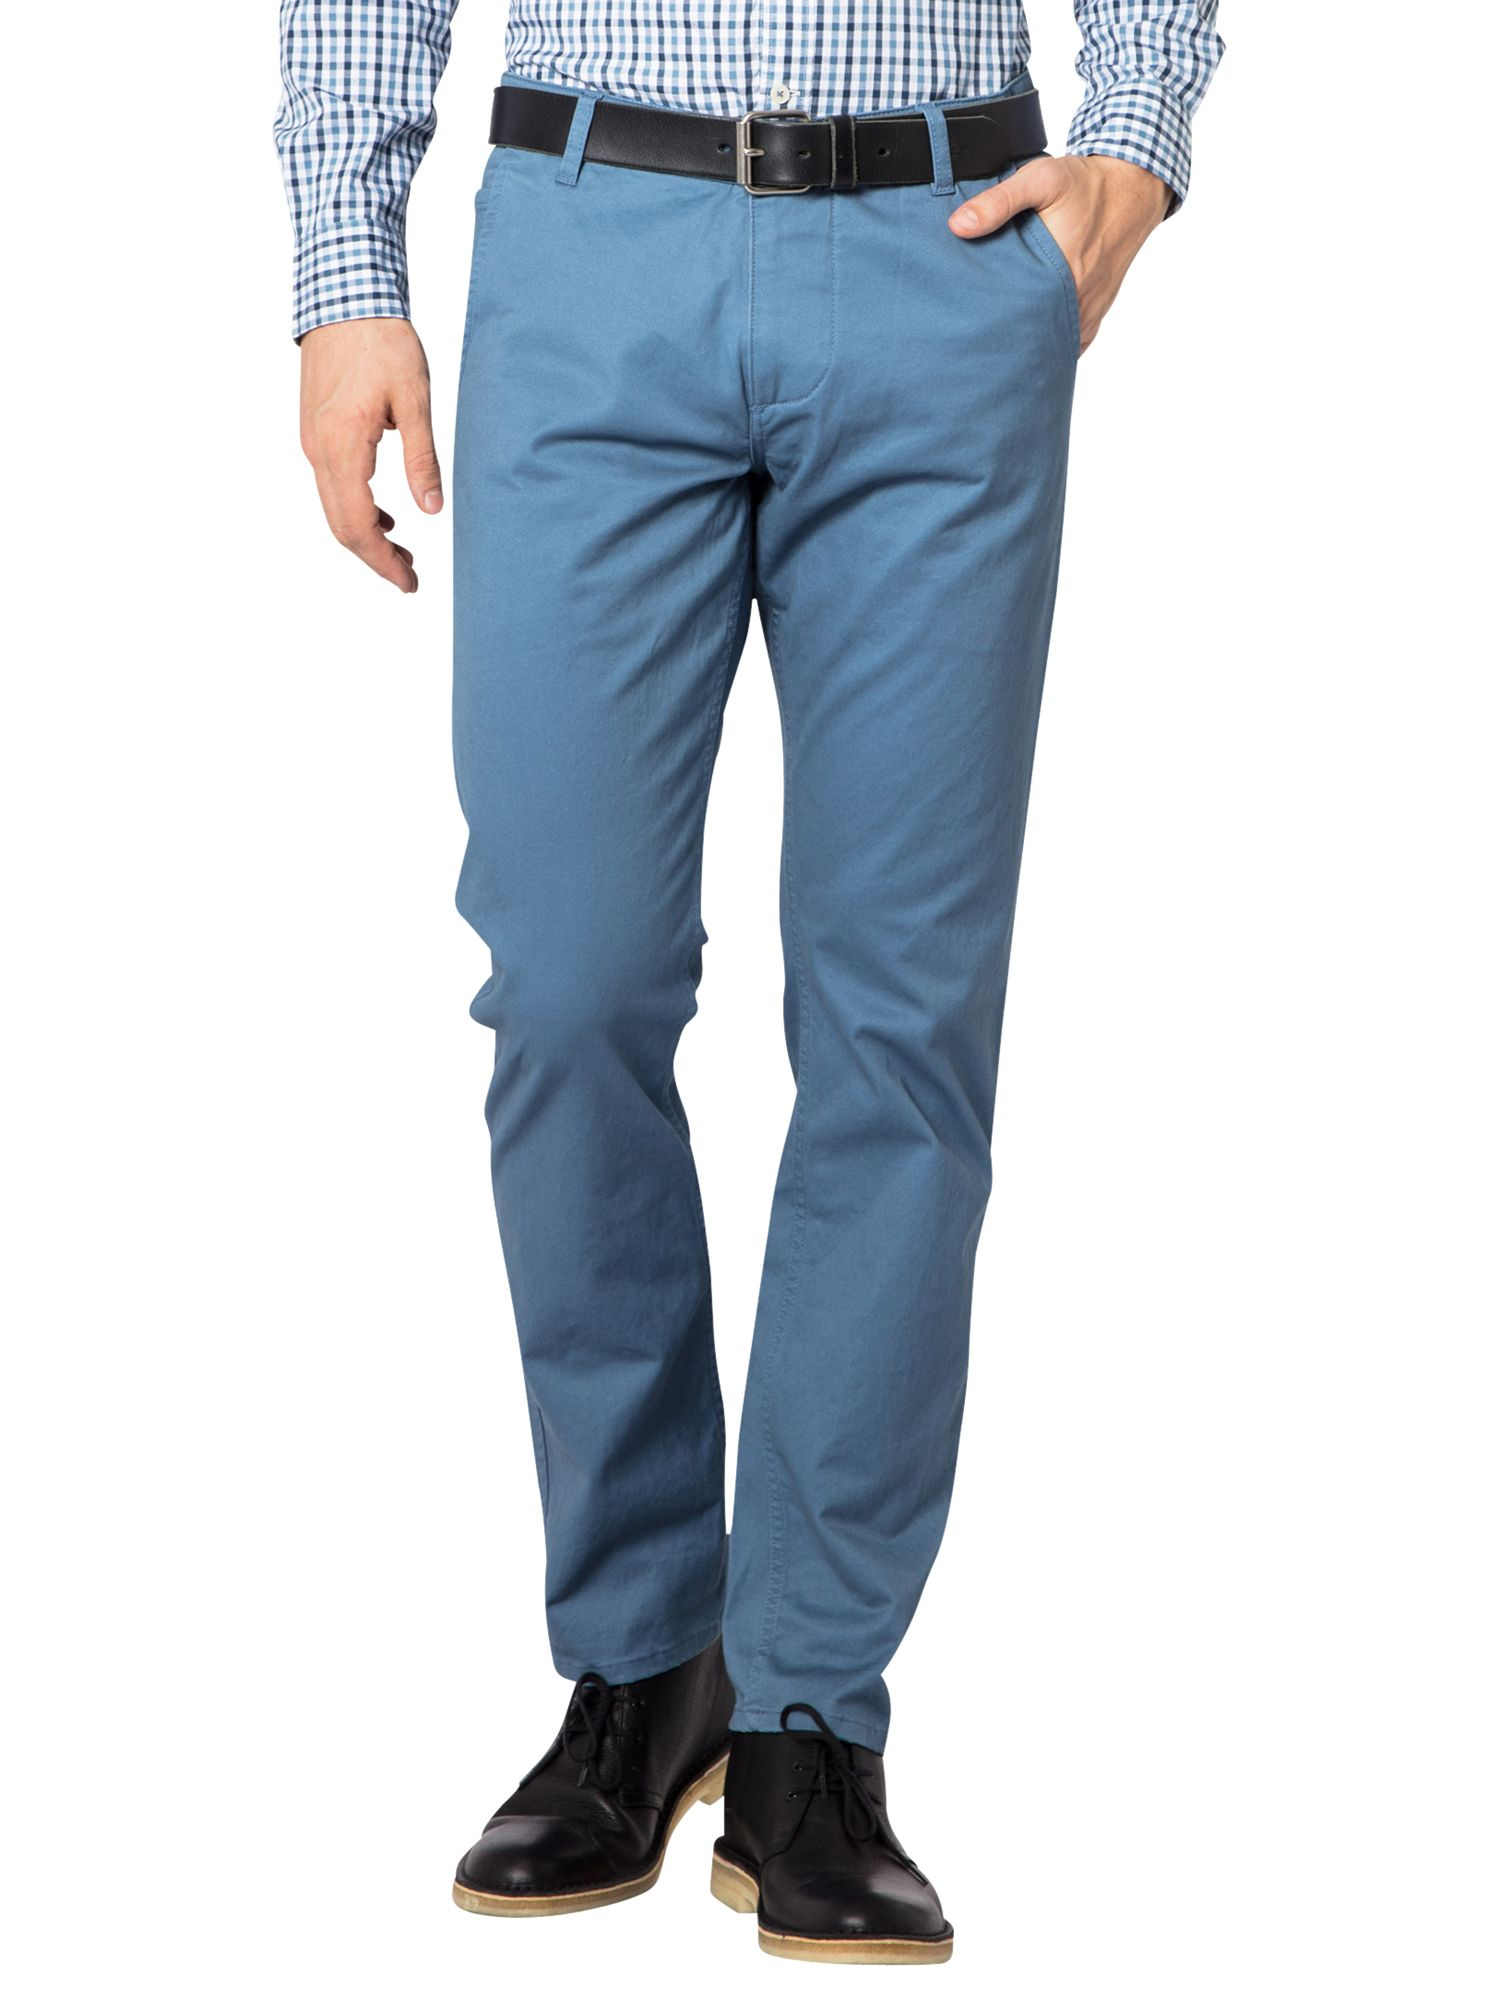 Dockers Dockers Bic Alpha Original Slim Tapered Stretch Twill Chinos, Copen Blue